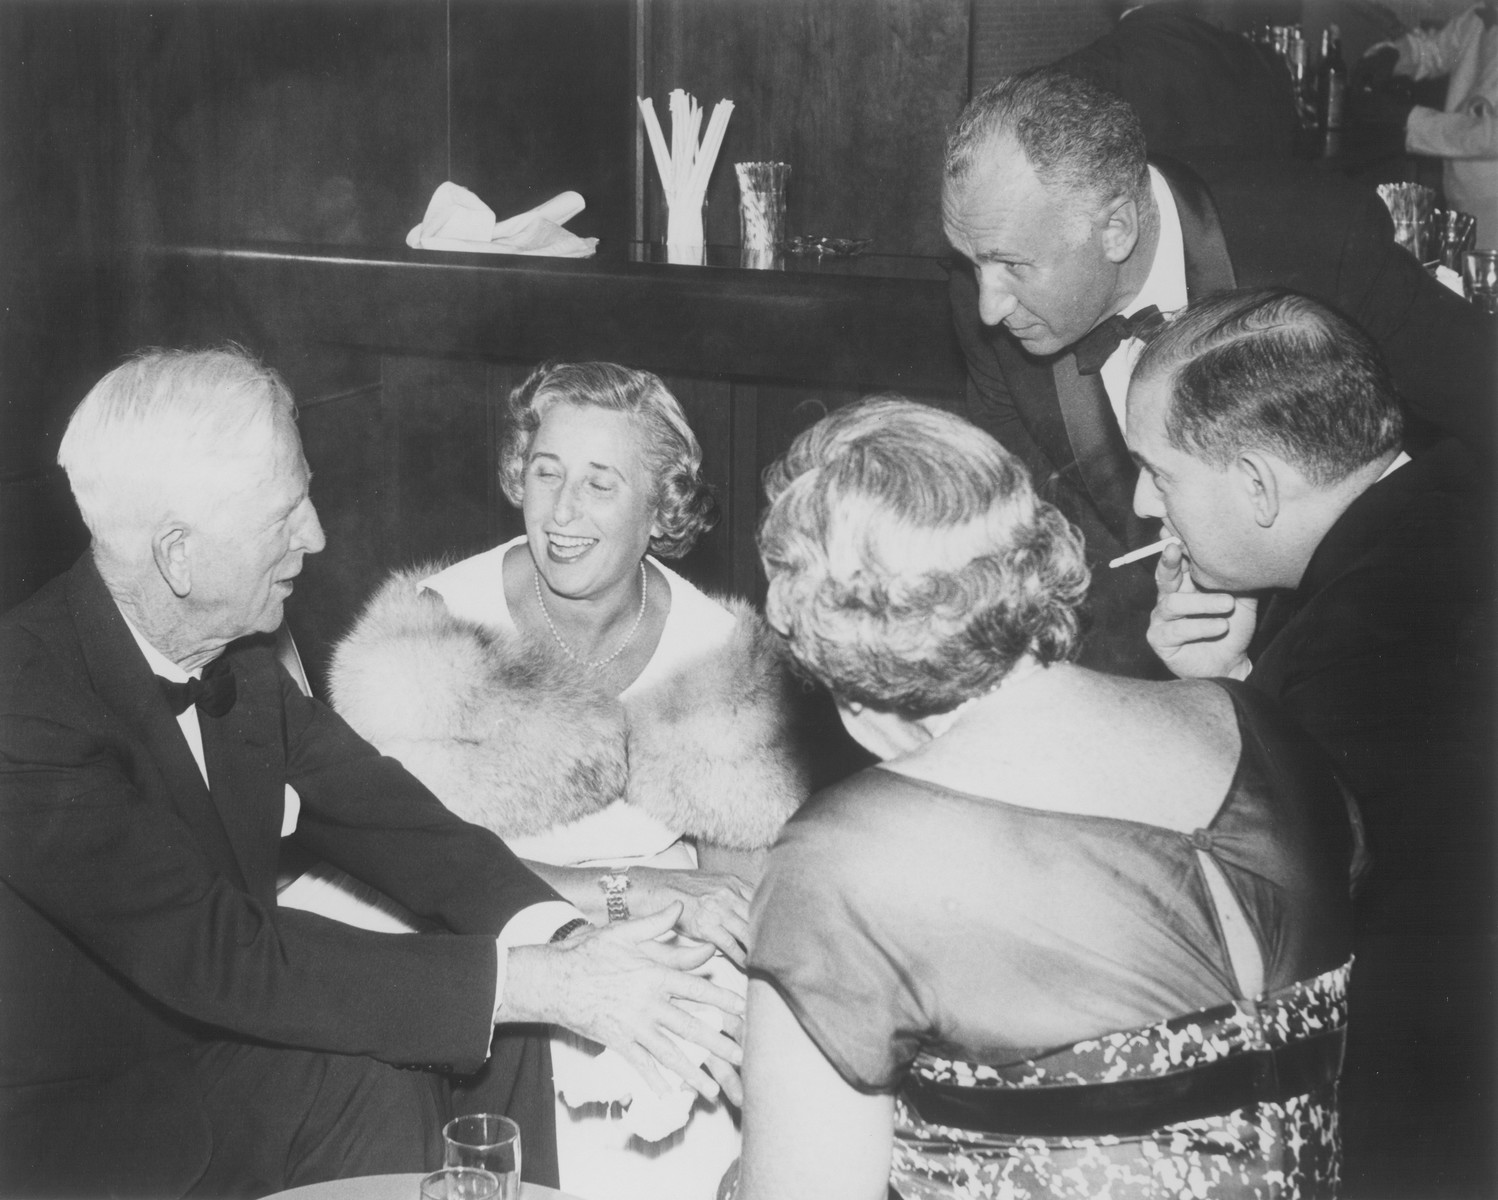 American Jewish philanthropist Abraham S. Kay speaks to James G. McDonald and others at an affair in Washington, D.C.  Among those pictured are: James G. McDonald (left), Abraham S. Kay (top right) and Abraham Harman (far right with cigarette).